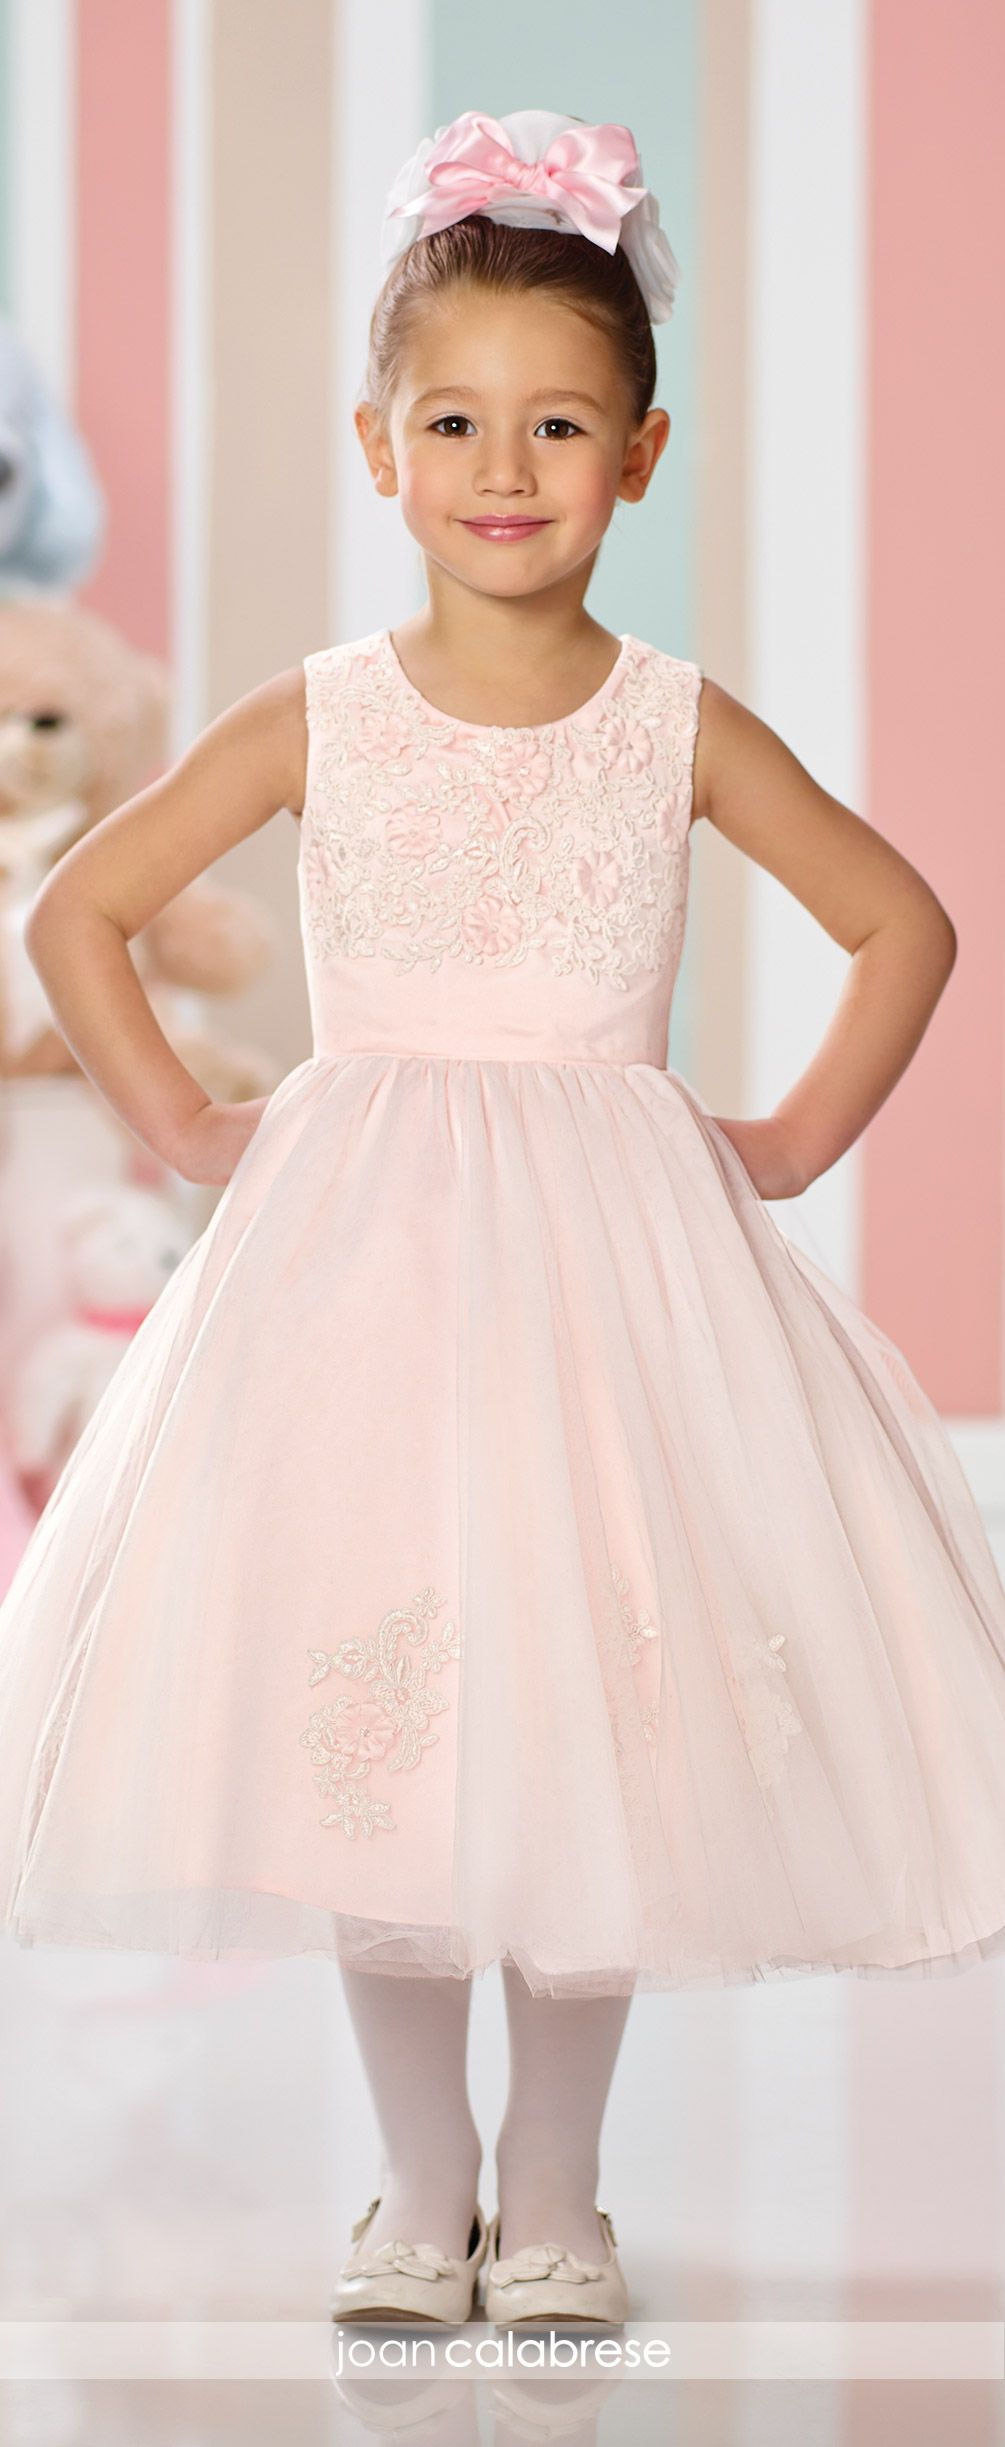 Joan Calabrese Flower Girl Dresses Pinterest Pink Flower Girl